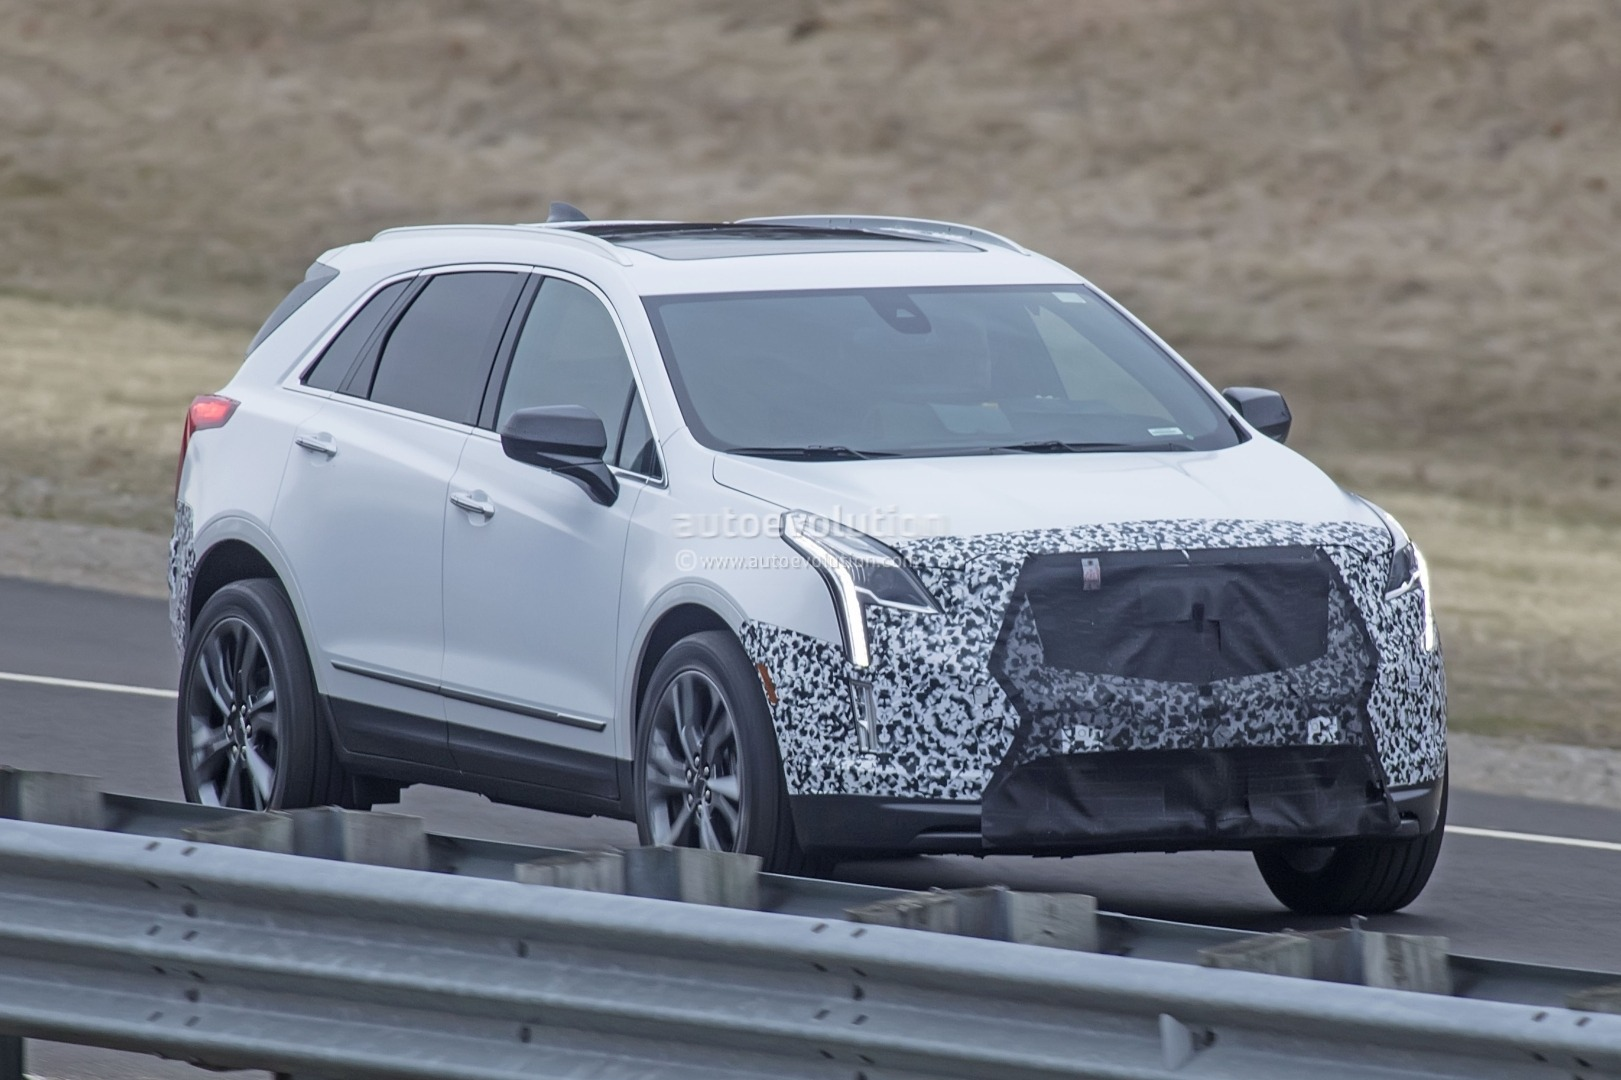 2020 Cadillac Xt6 Redesign Release Date Price Best New Suvs